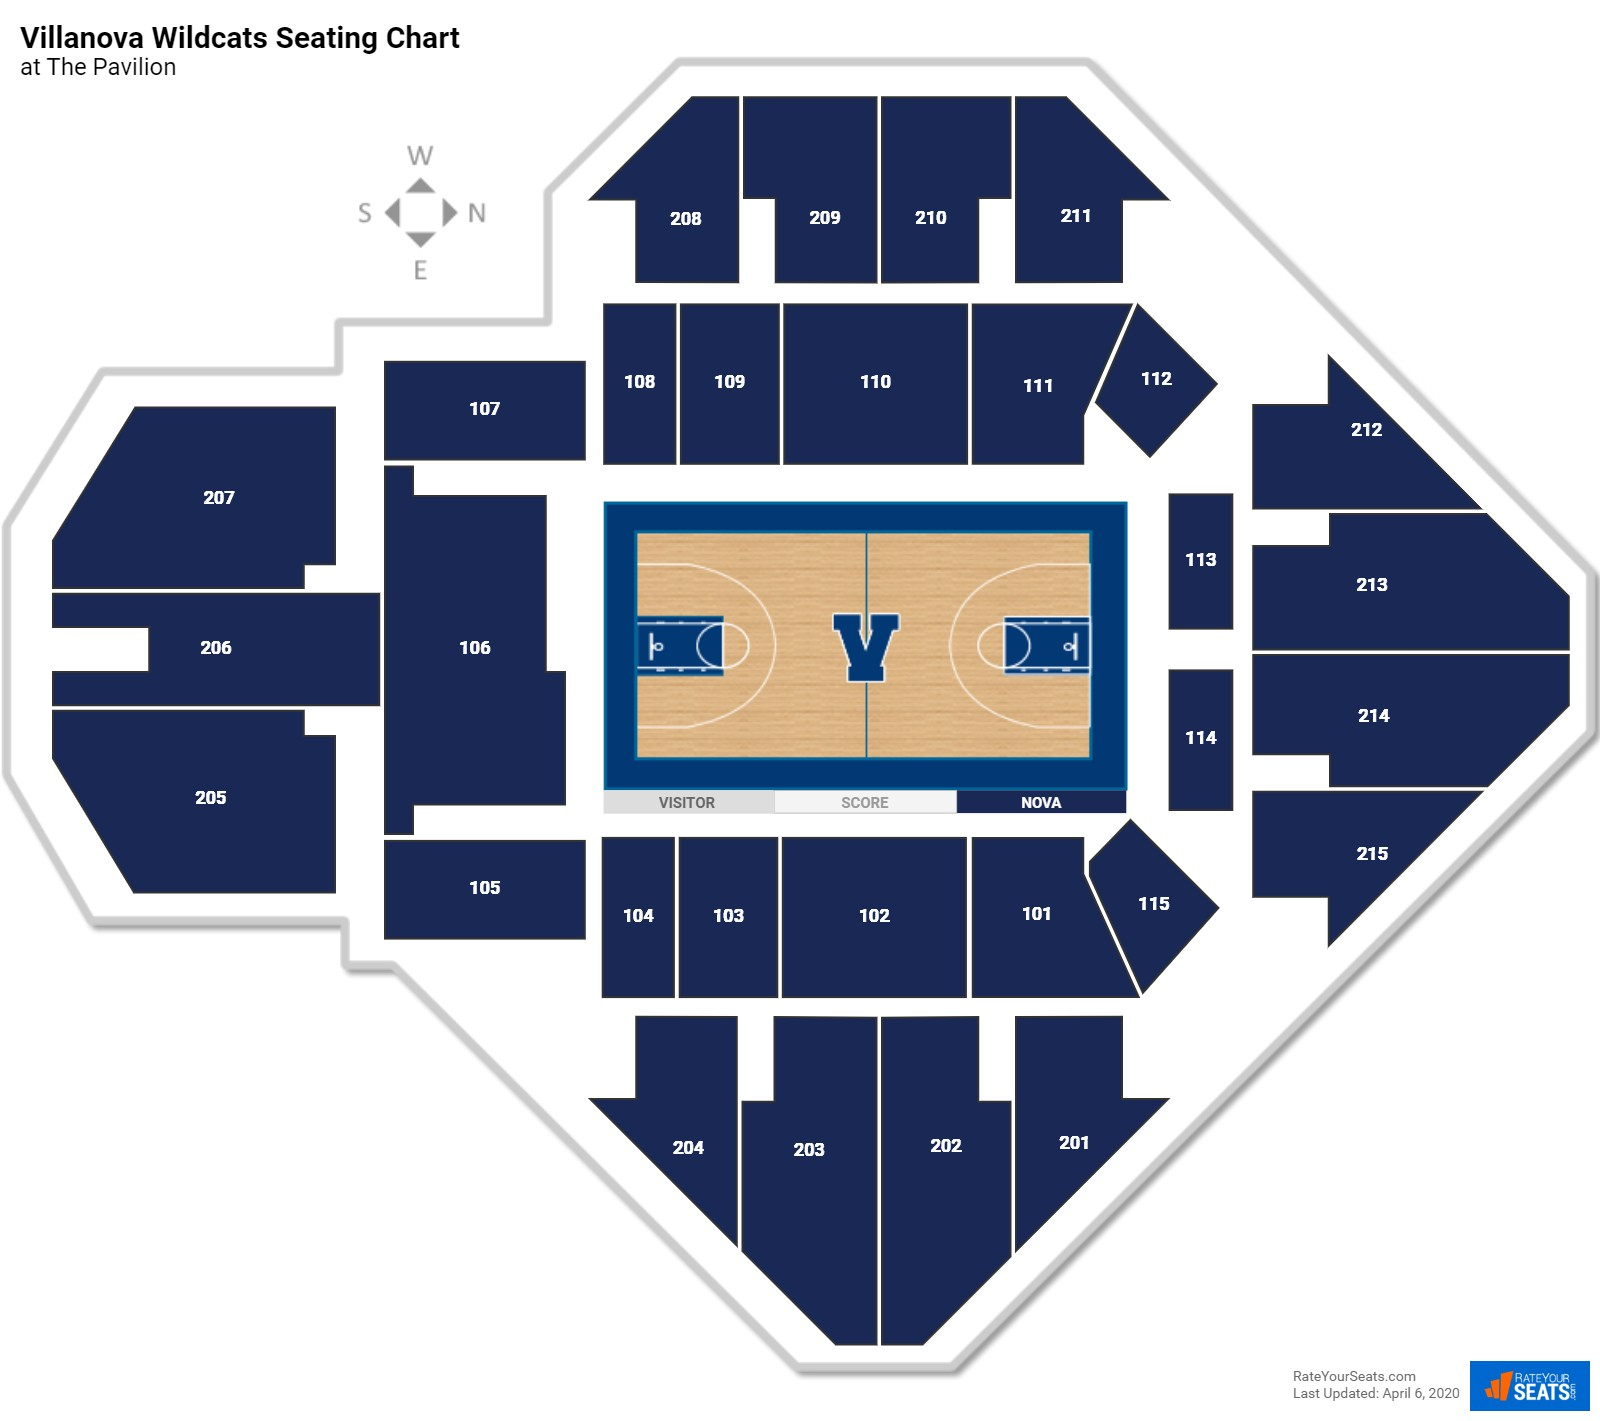 Villanova Basketball Seating Chart